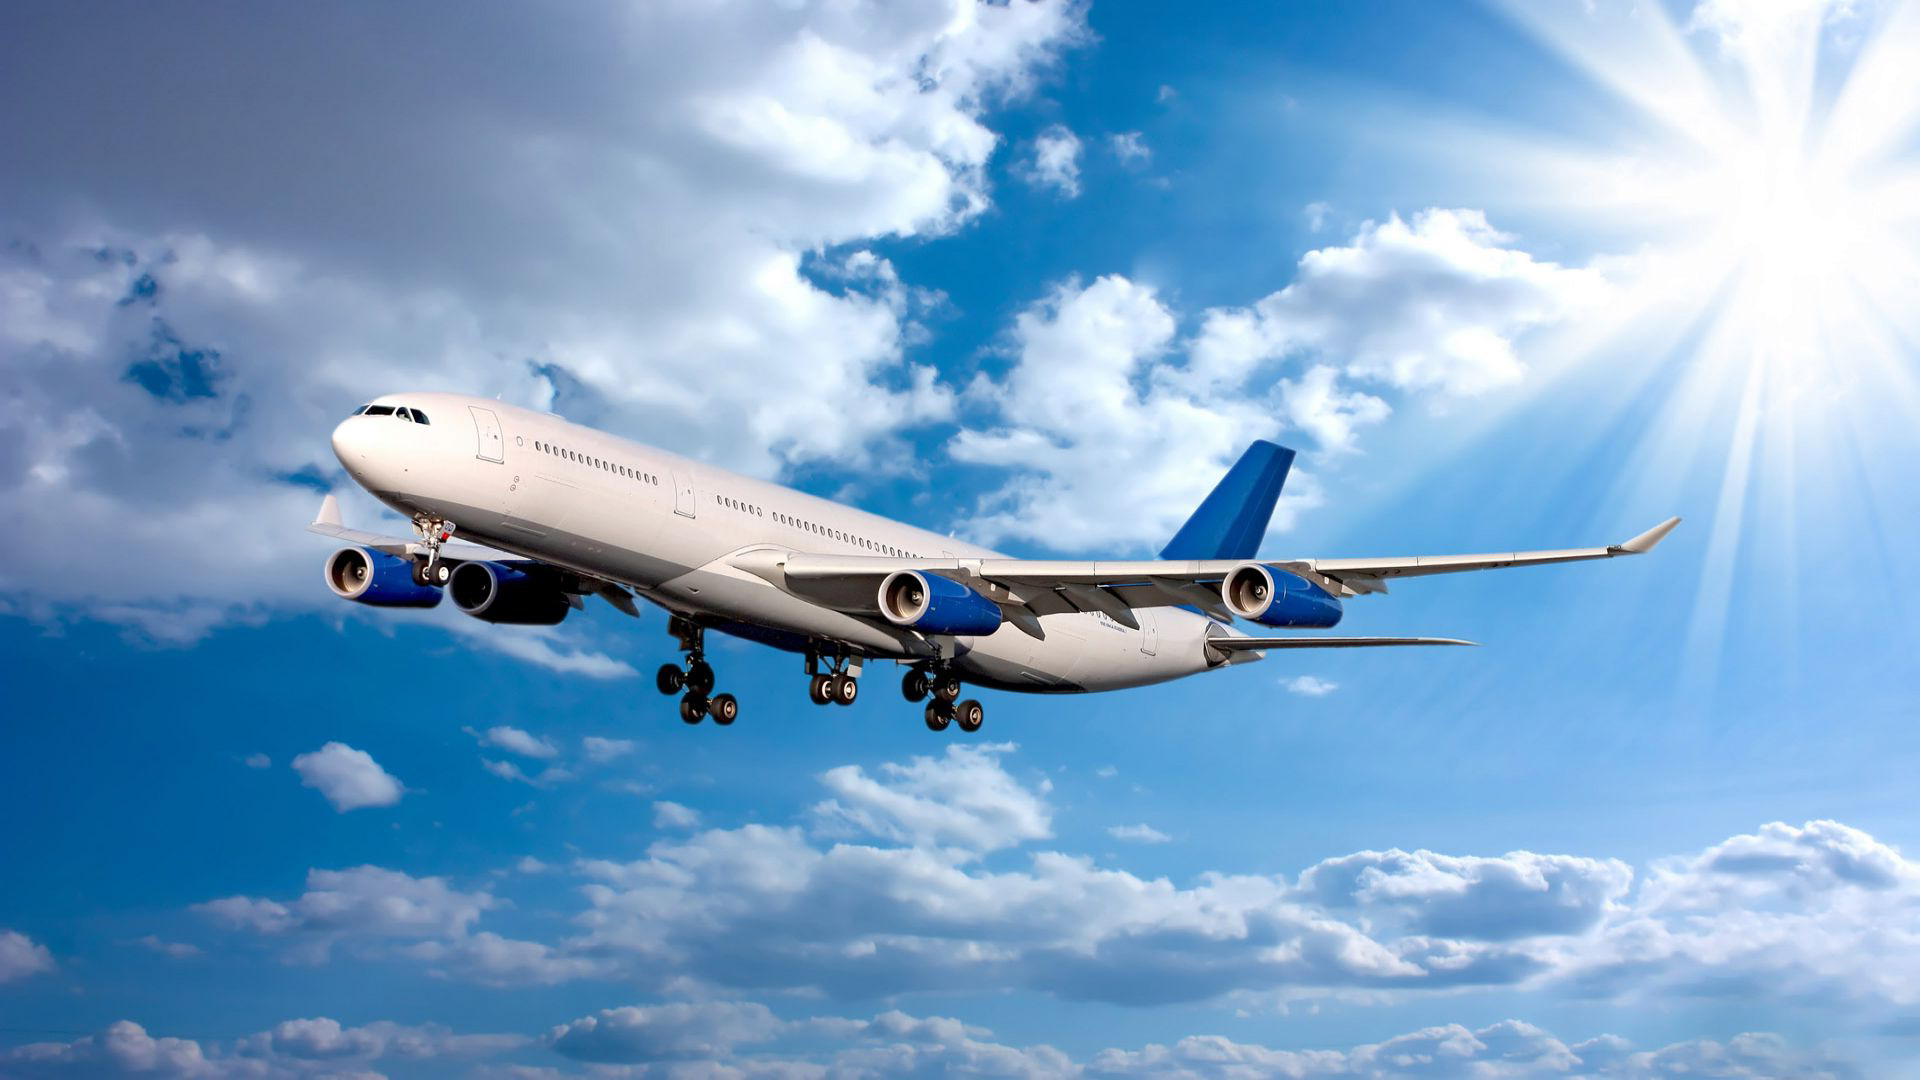 22 Airbus HD Quality Background Pictures GsFDcY HD Wallpapers 1920x1080